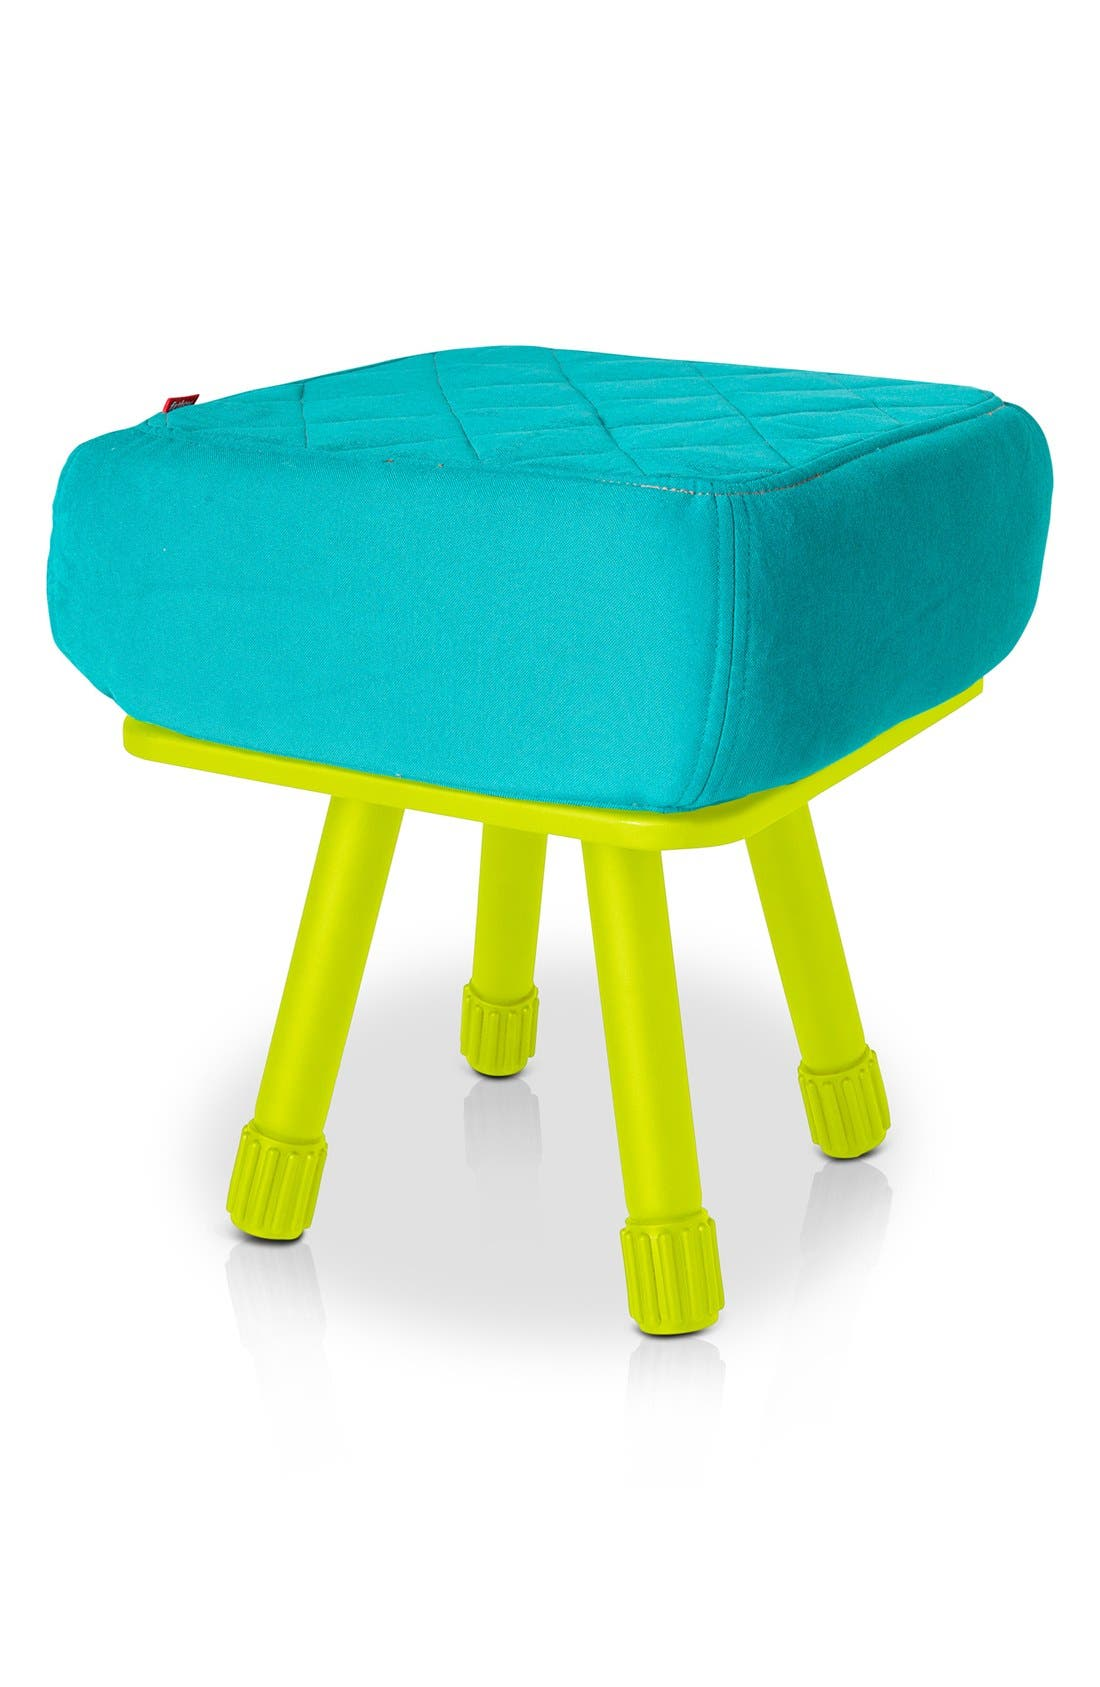 FATBOY 'Krukski Tablitski' Stool